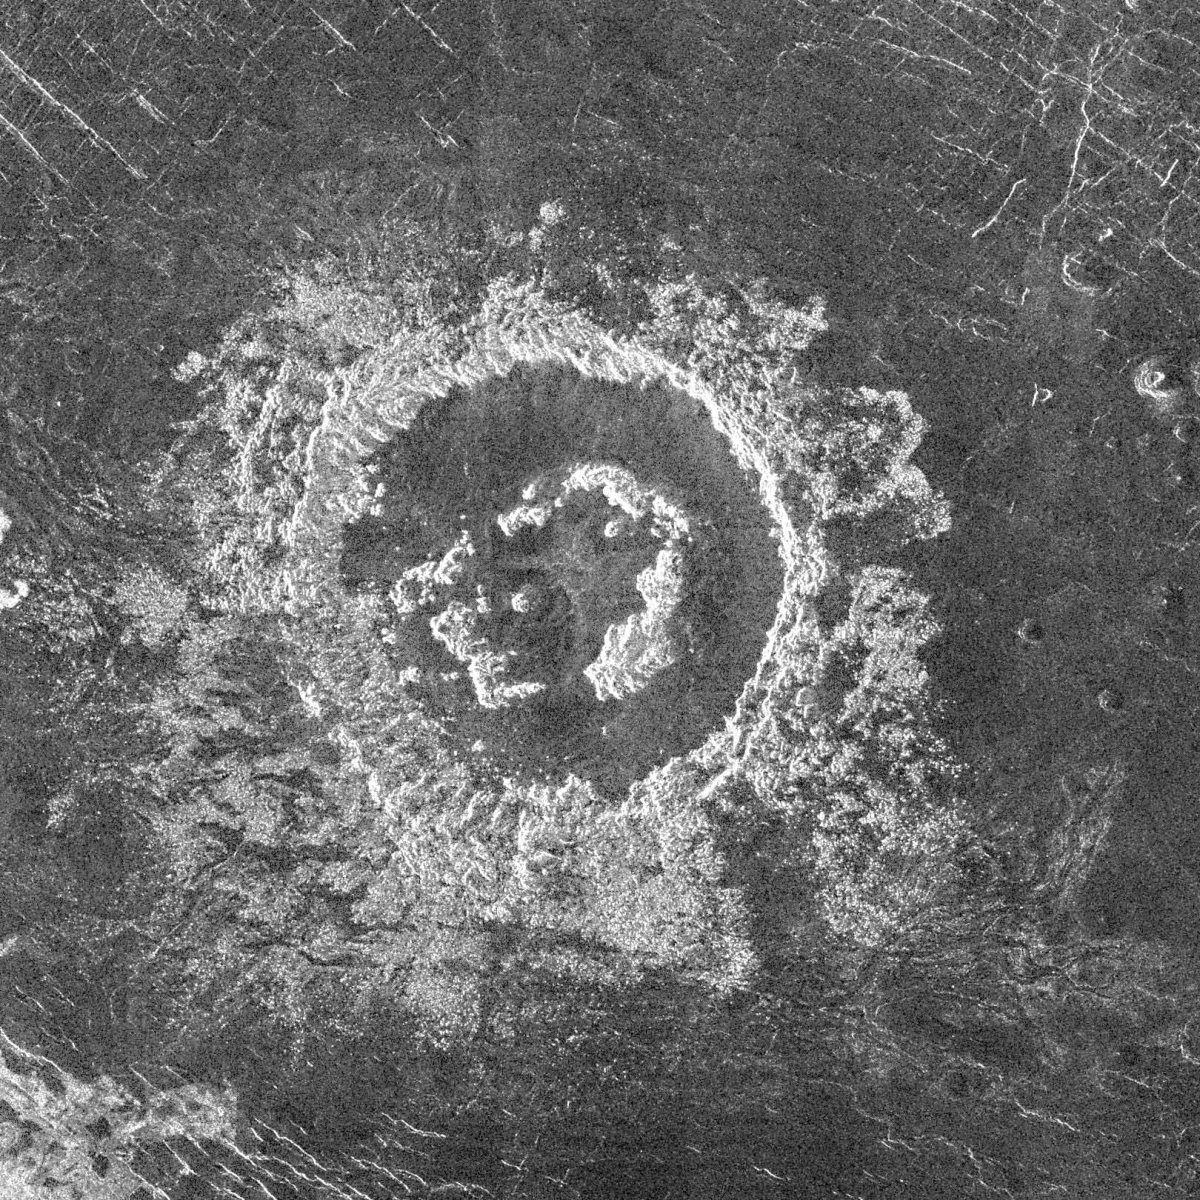 The Barton Crater on Venus